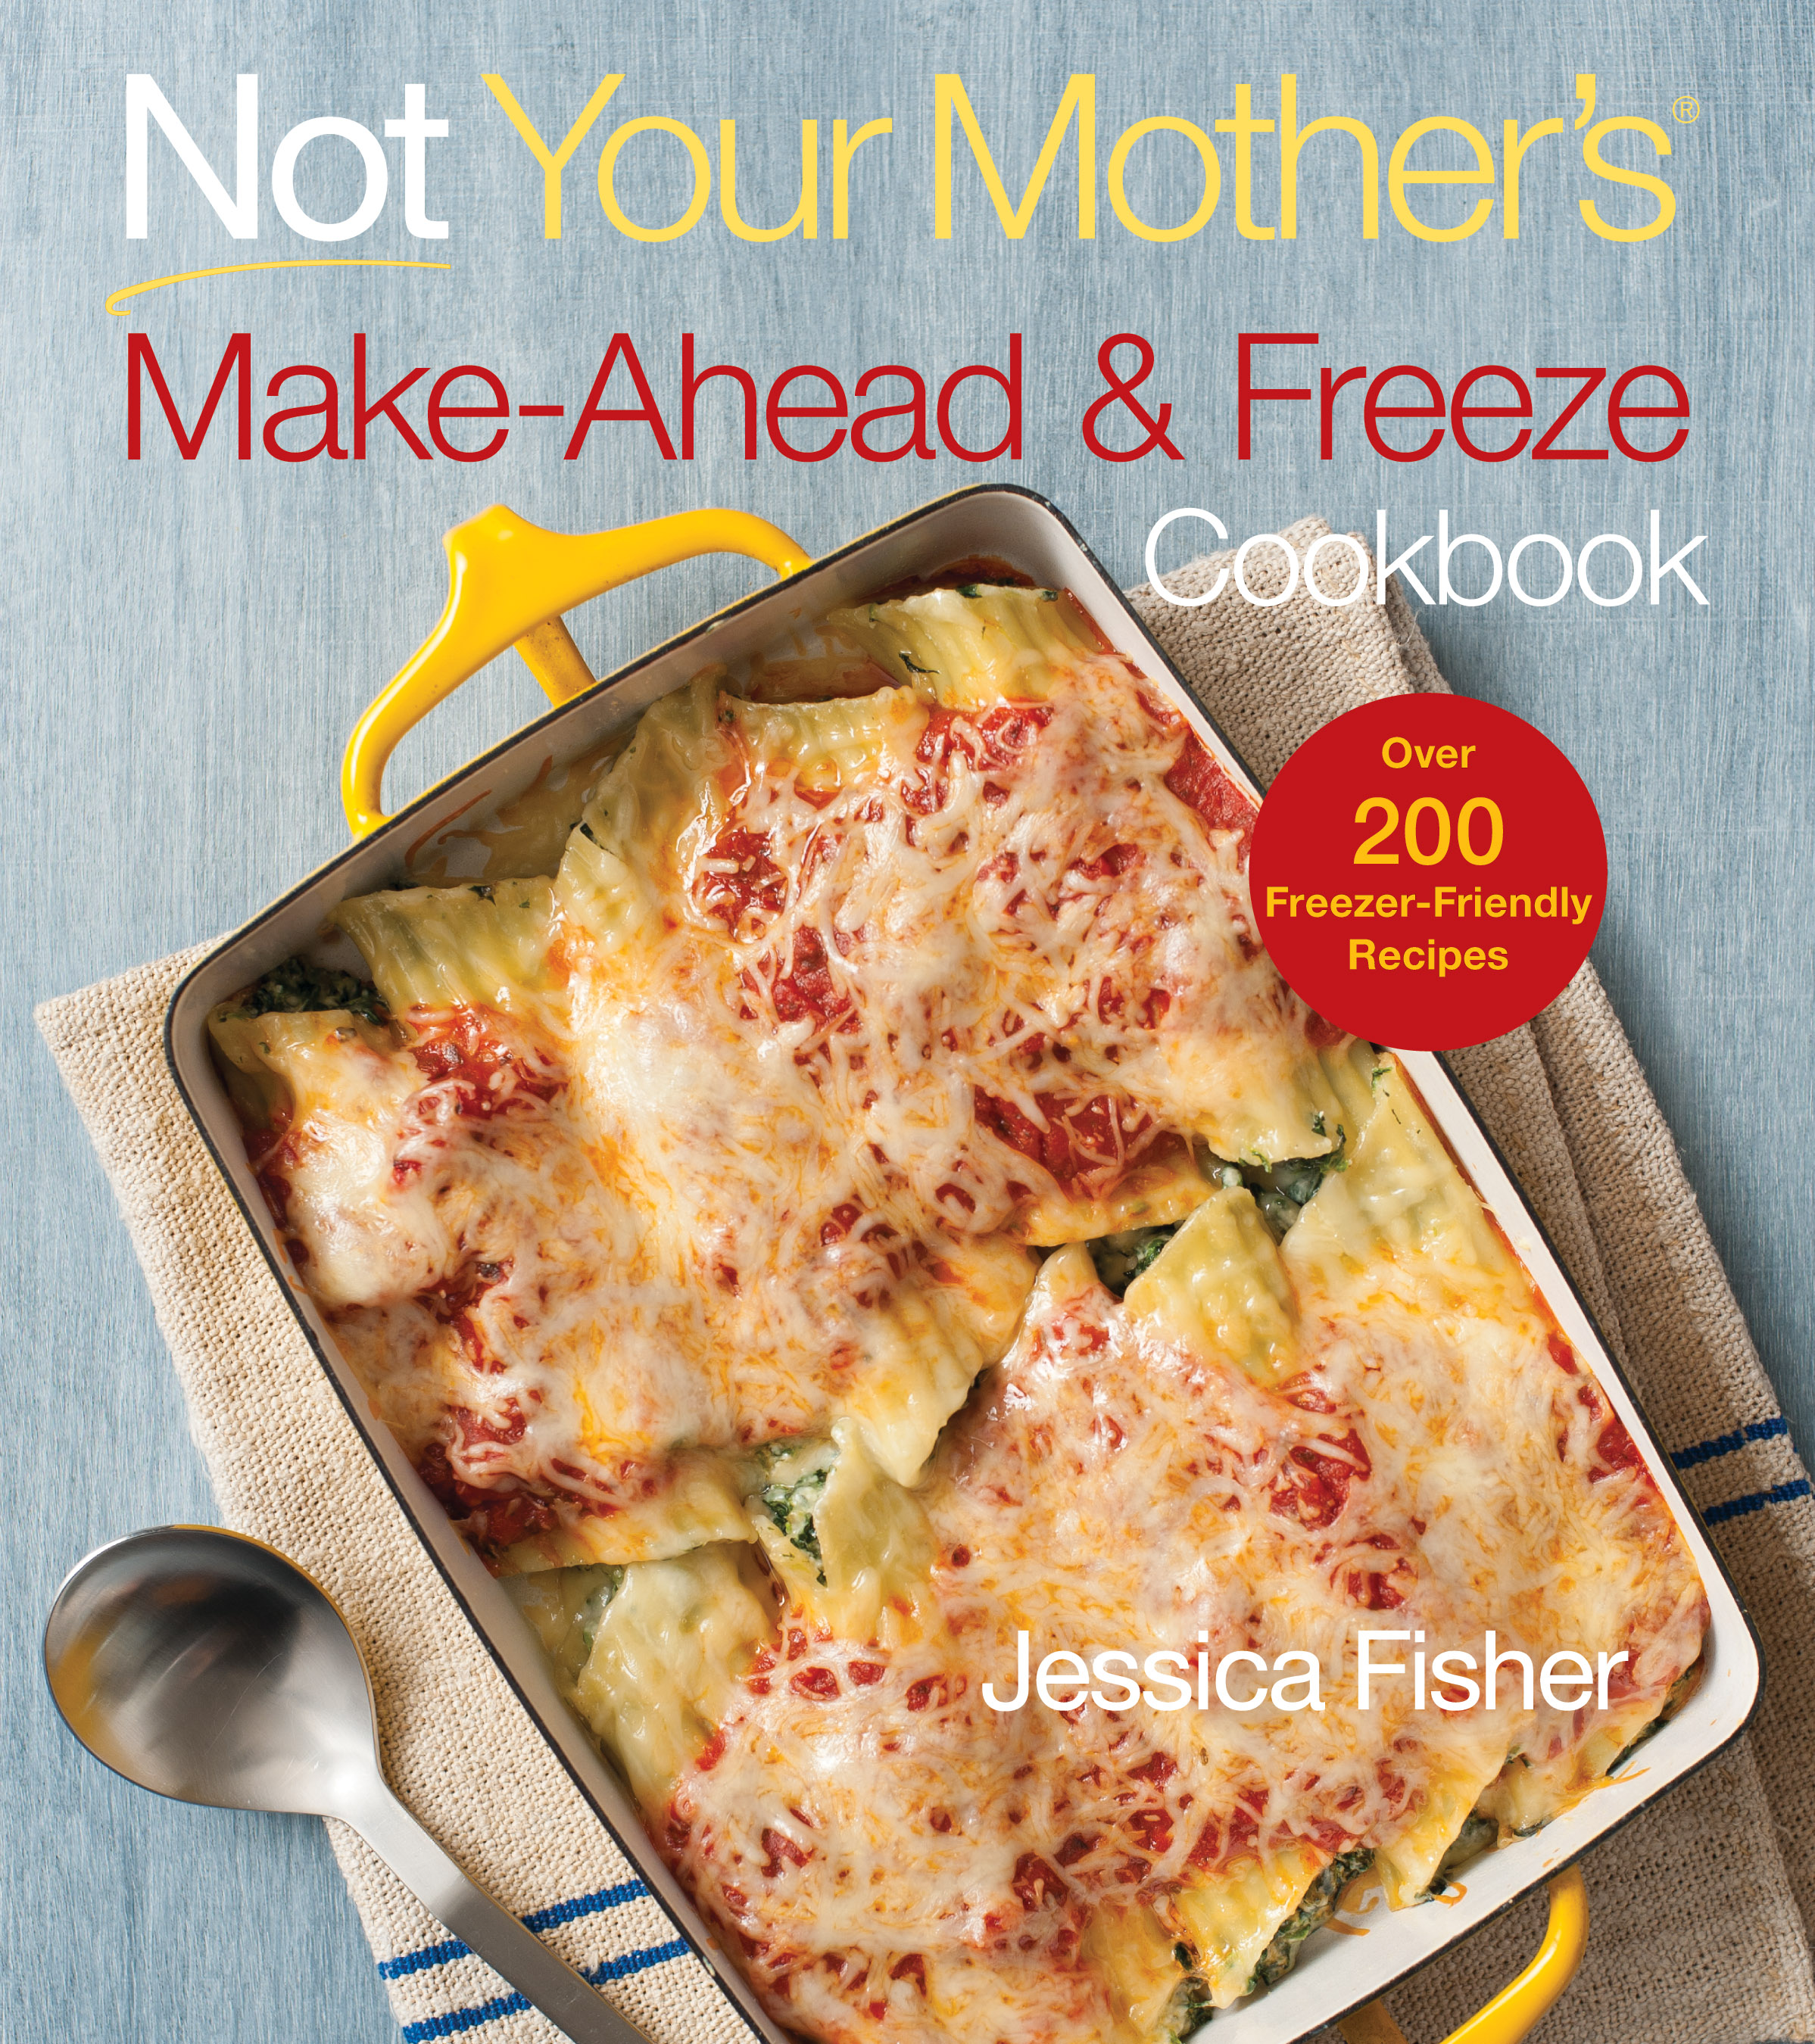 Not Your Mother's Make Ahead and Freeze Cookbook Review and Giveaway